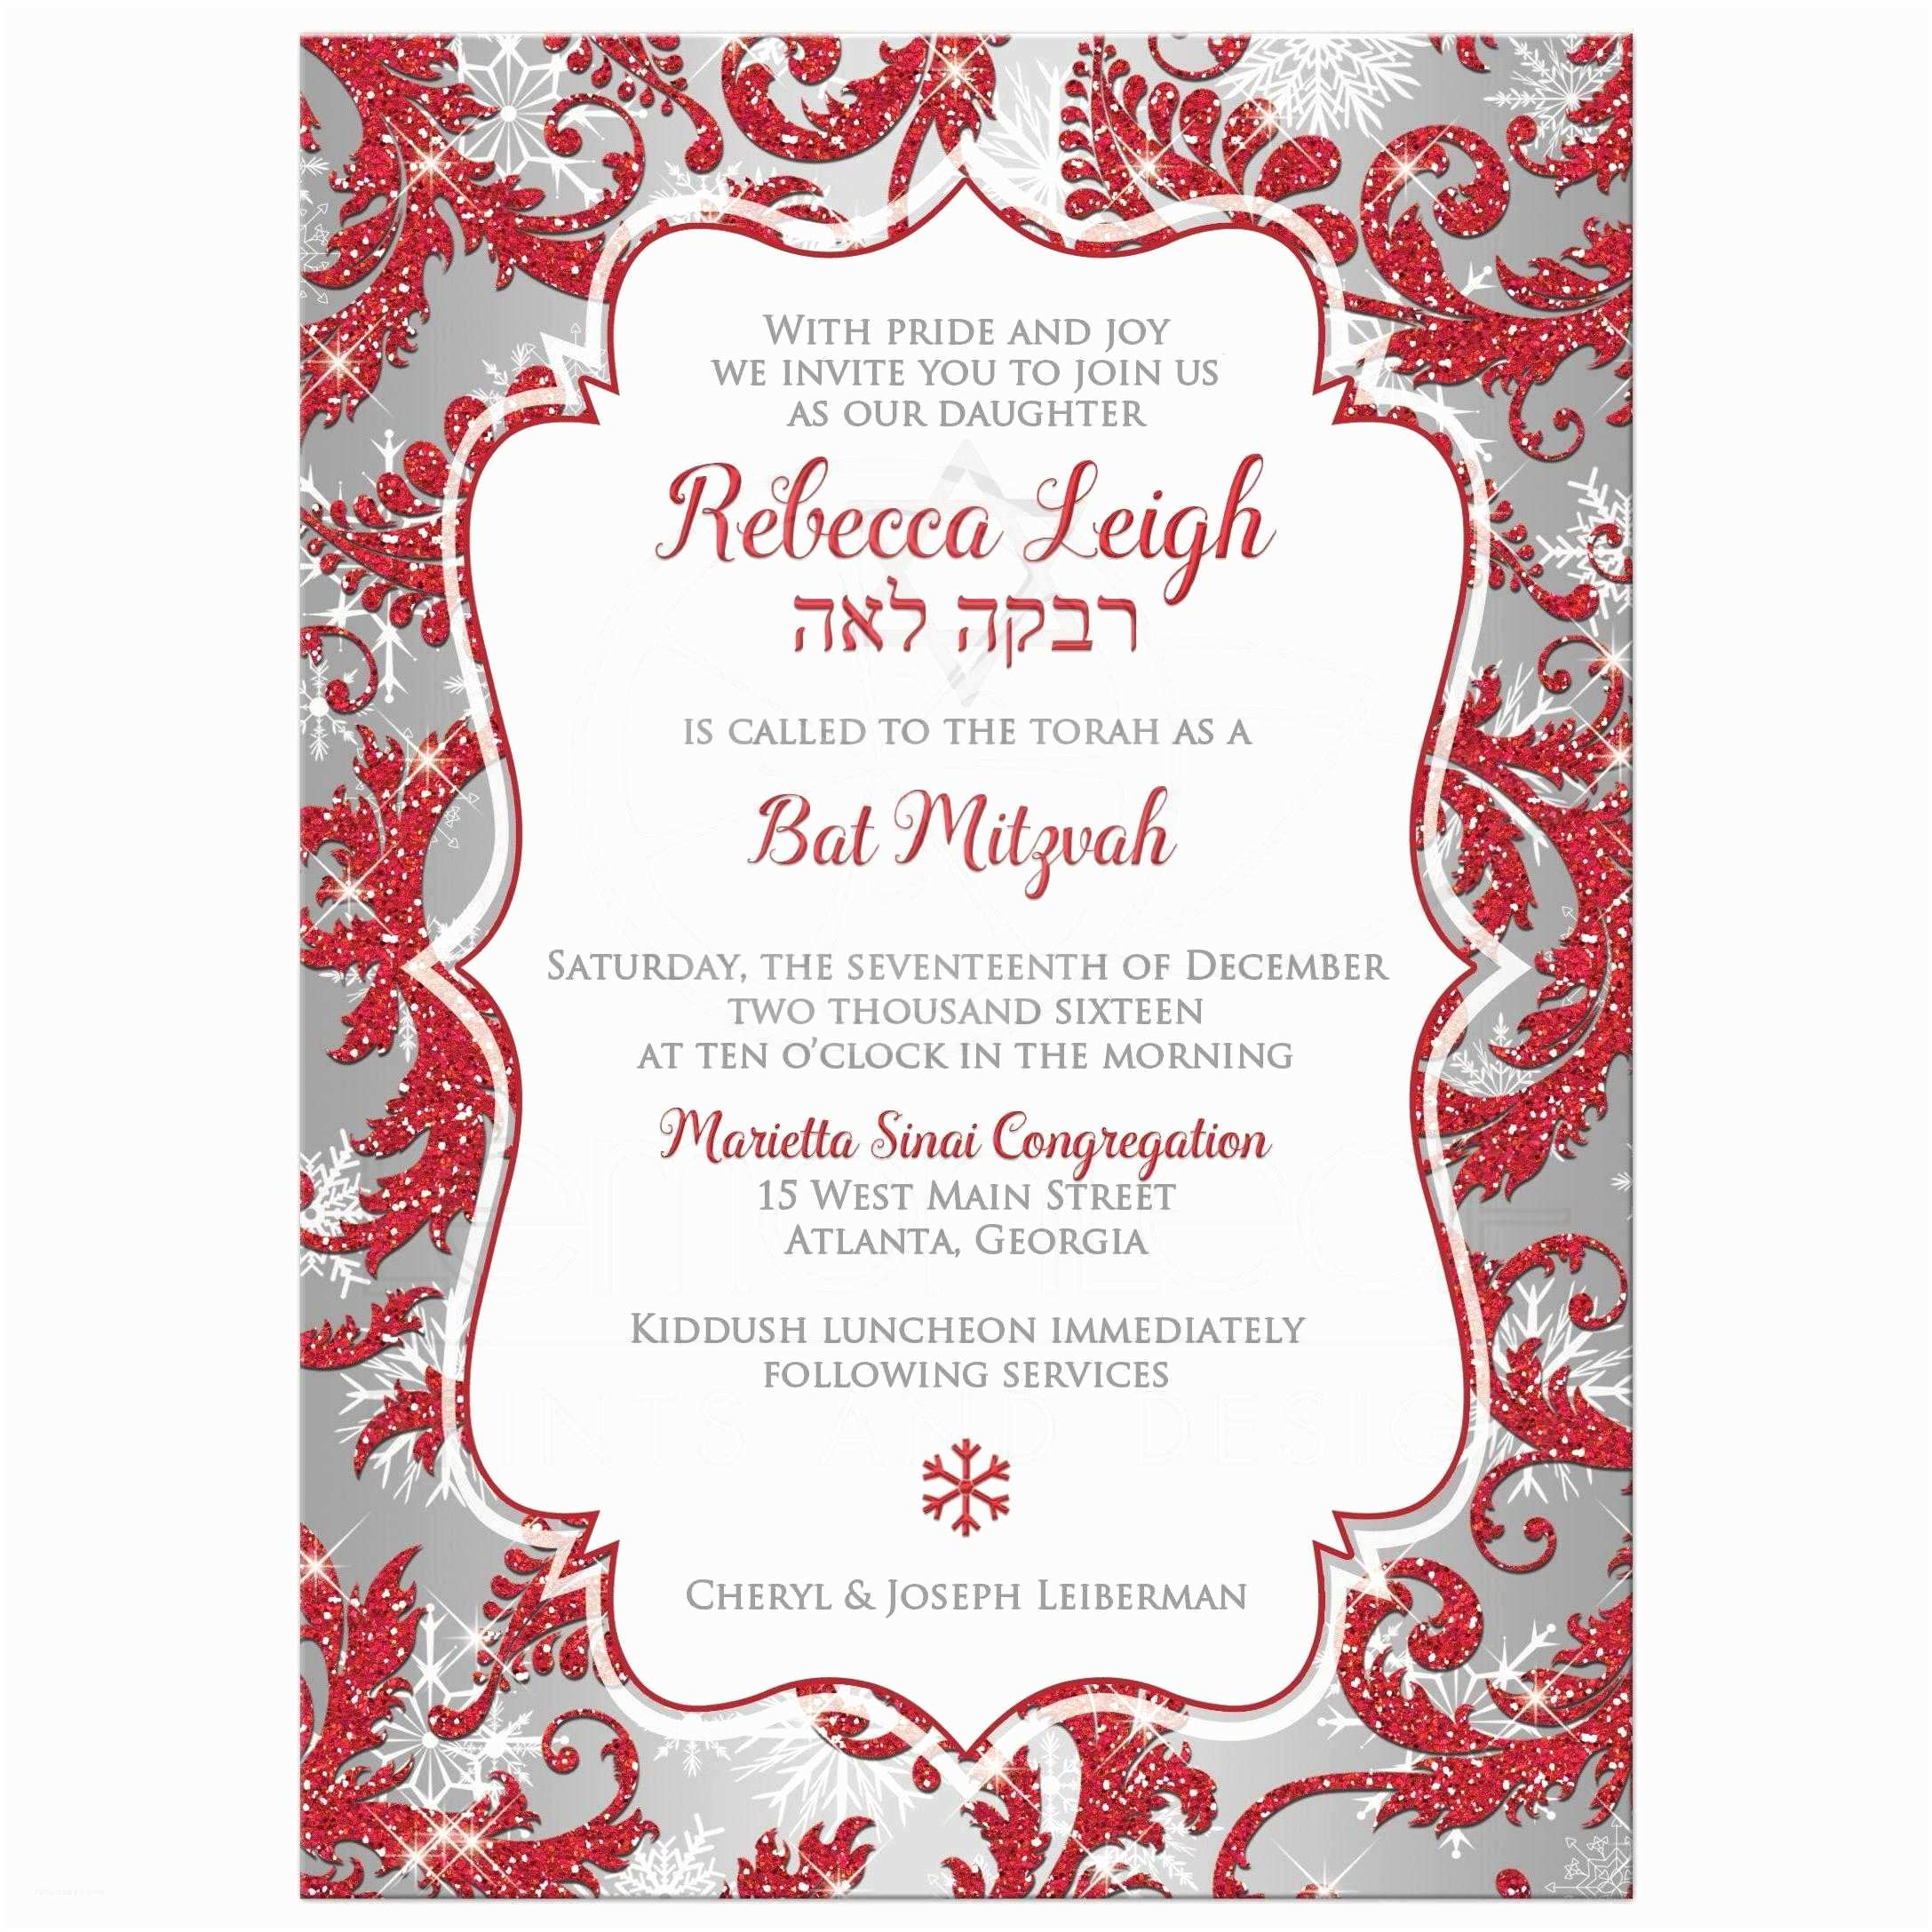 Red White and Silver Wedding Invitations Bat Mitzvah Invitation